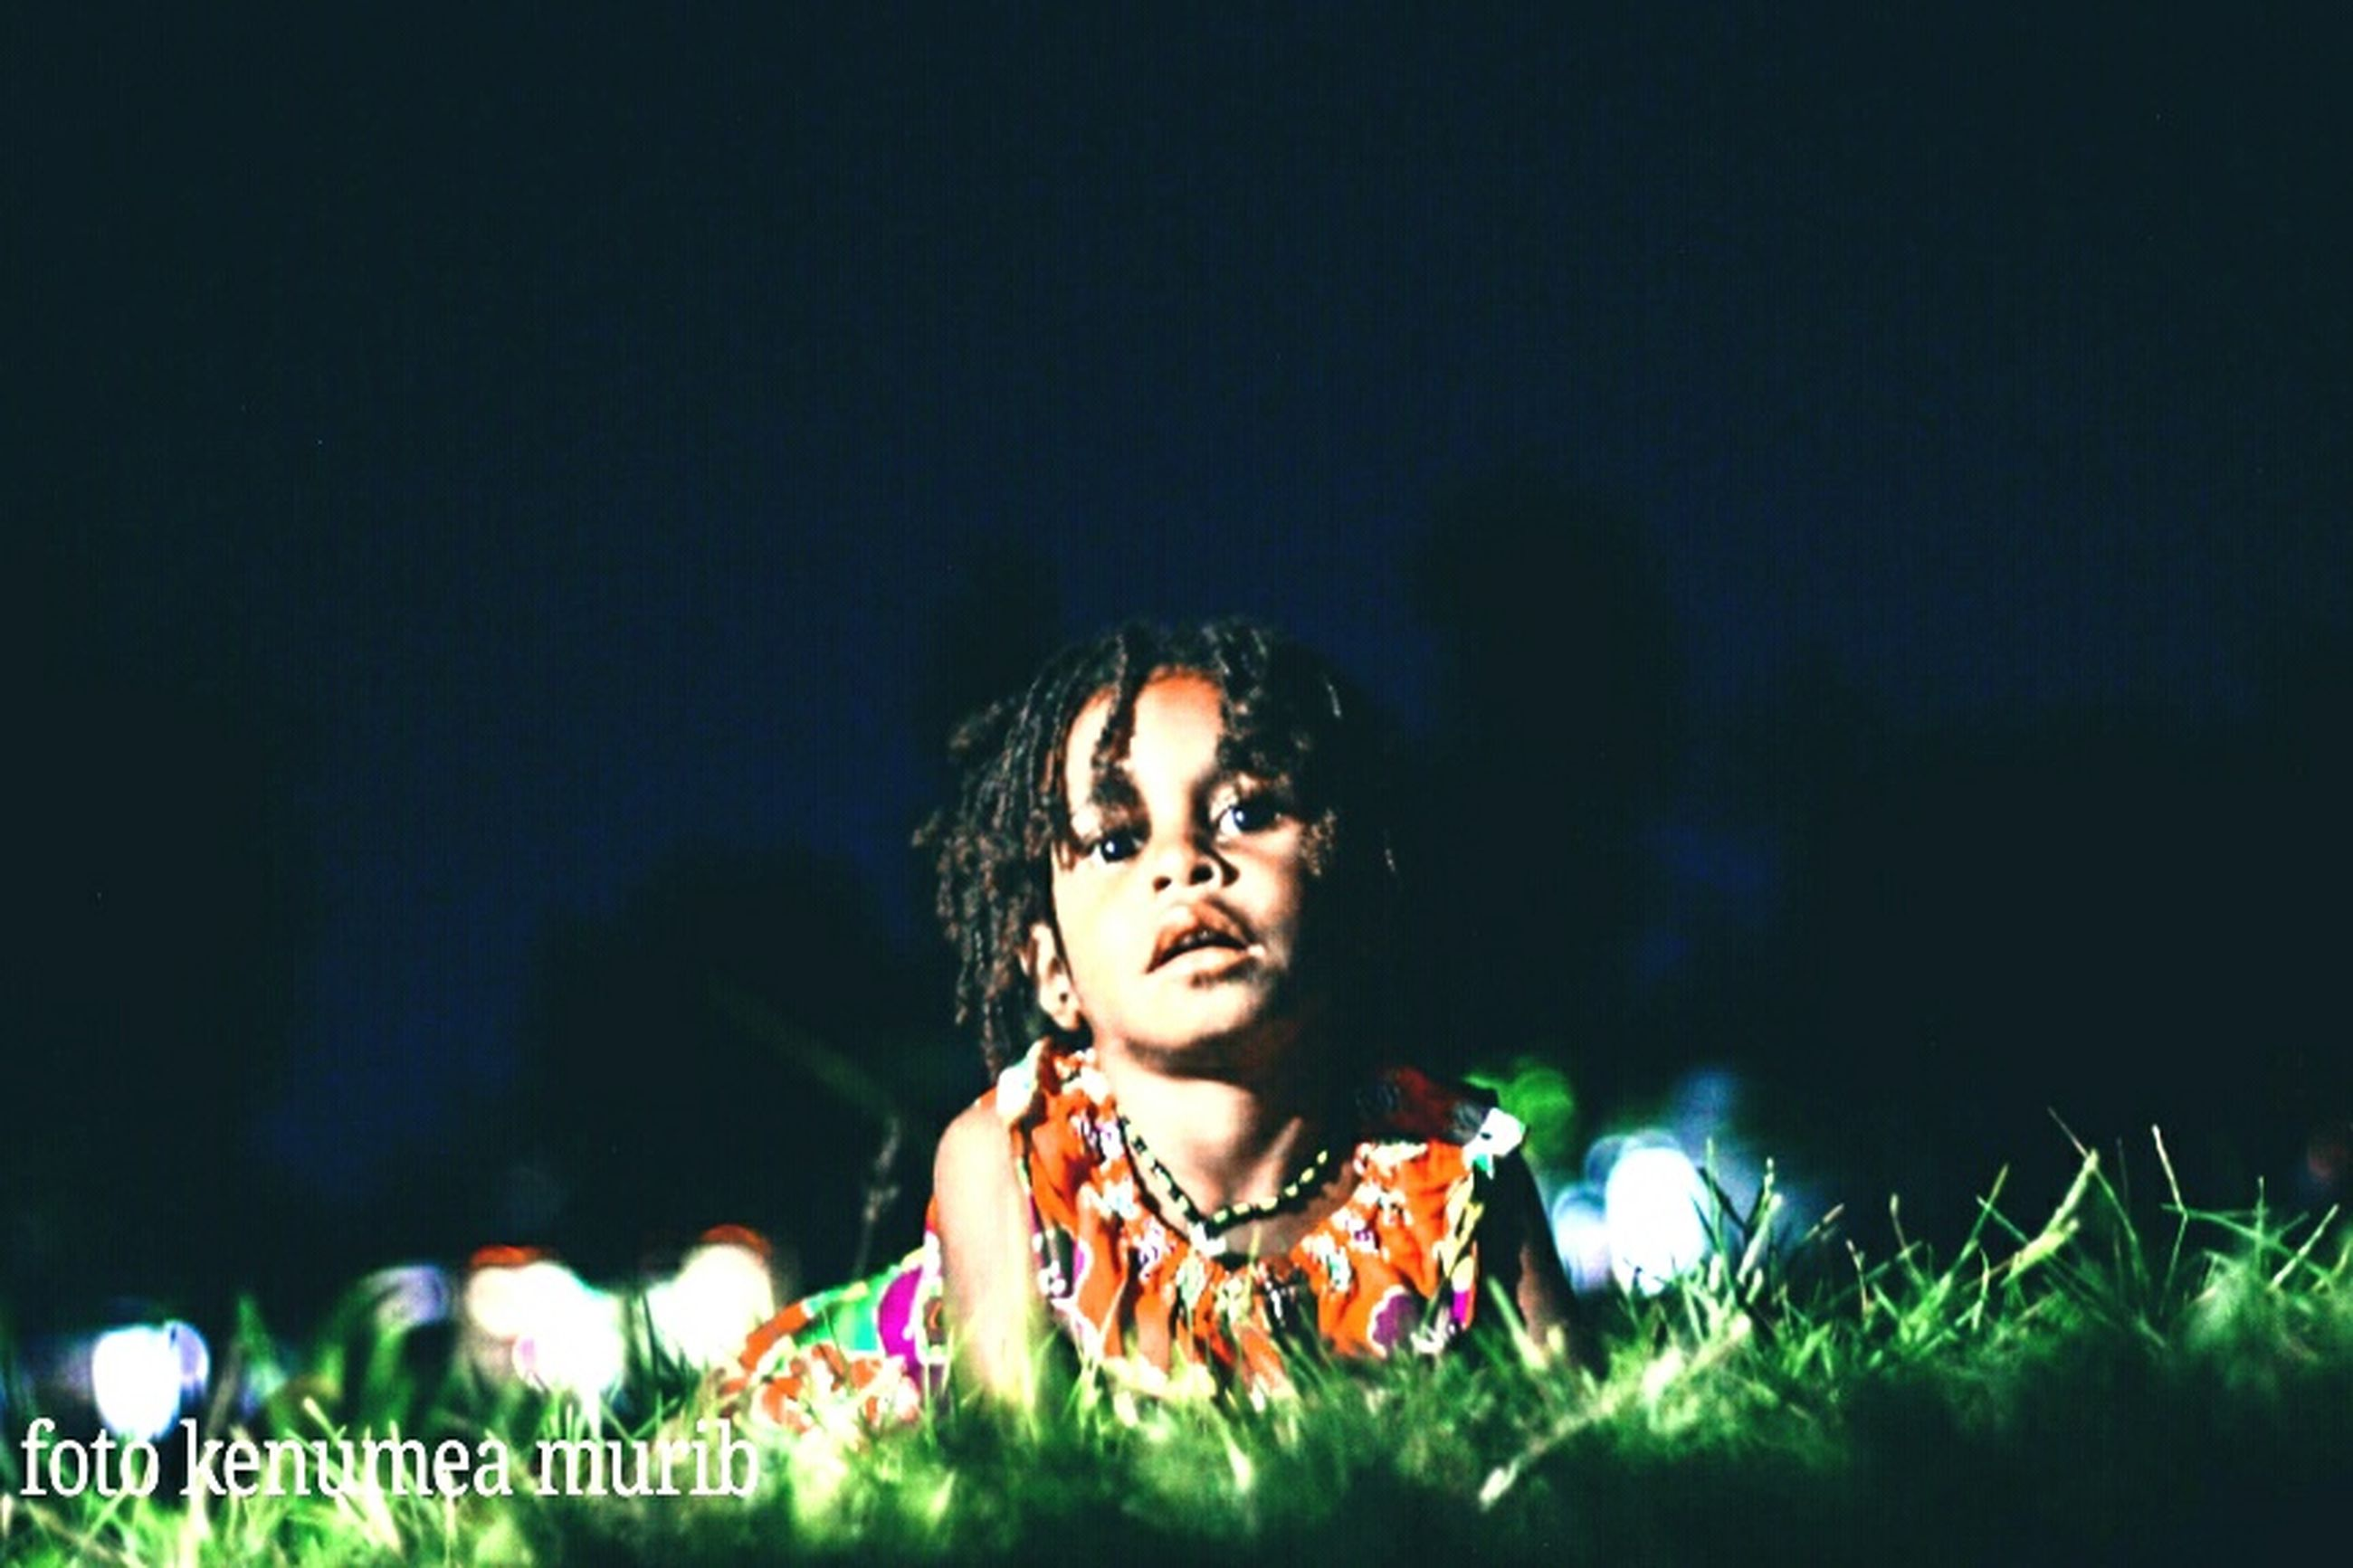 one person, night, child, looking, headshot, portrait, childhood, grass, front view, real people, lifestyles, leisure activity, illuminated, innocence, casual clothing, copy space, women, nature, dark, hairstyle, contemplation